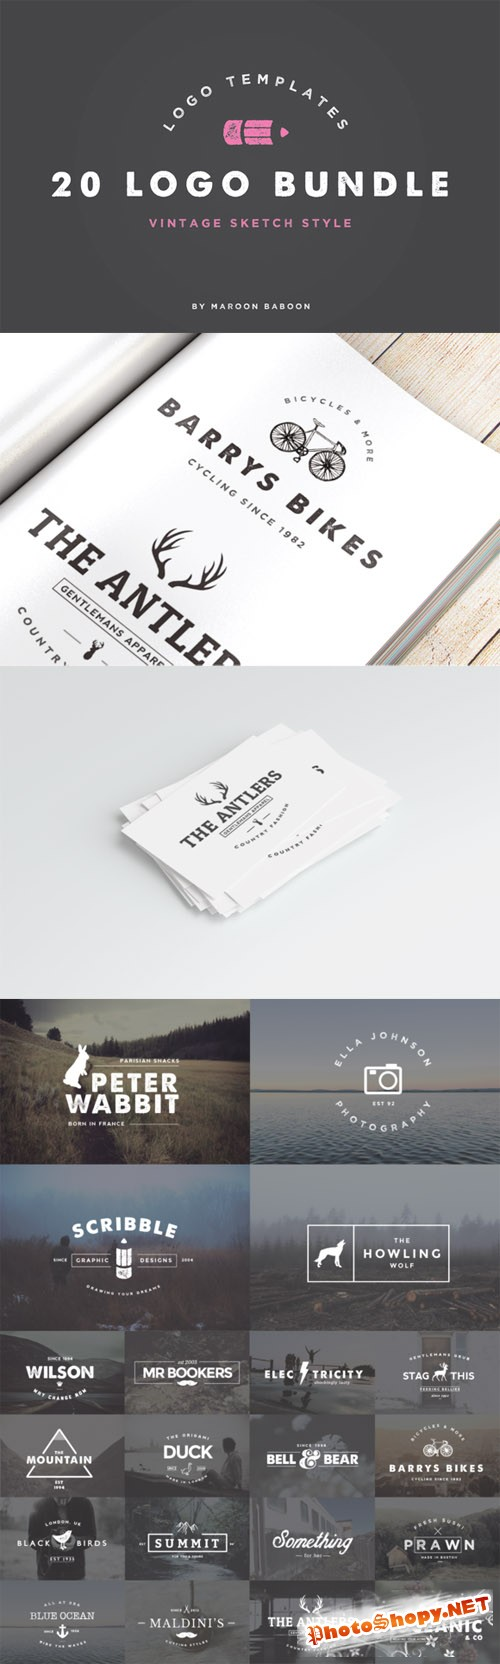 20 Vintage Logo Templates Bundle